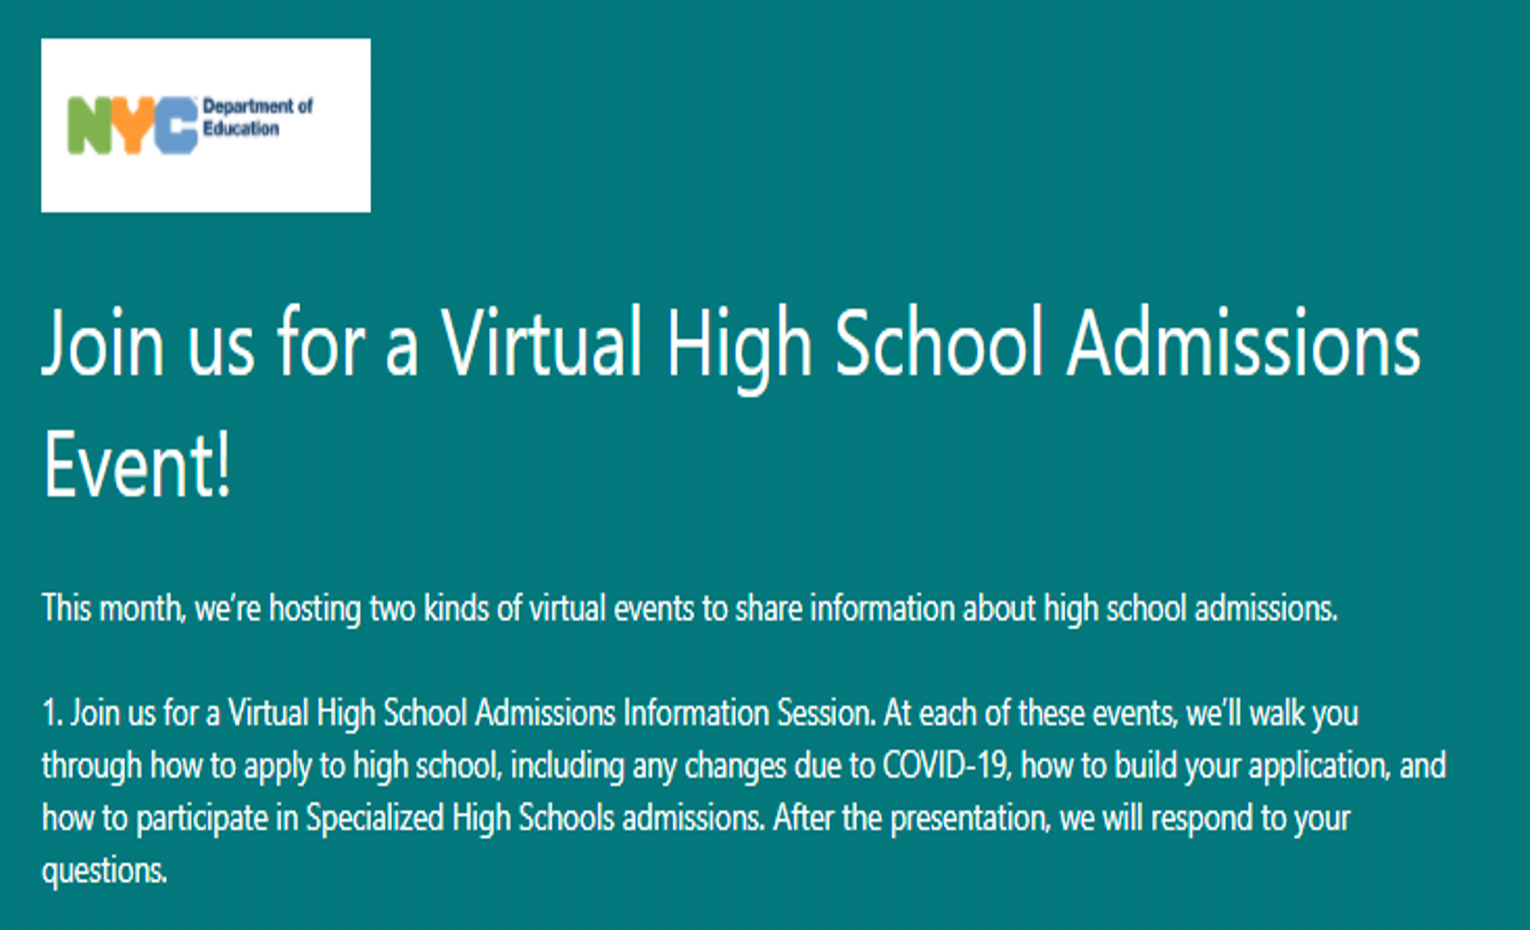 DOE Virtual High School Admissions Event